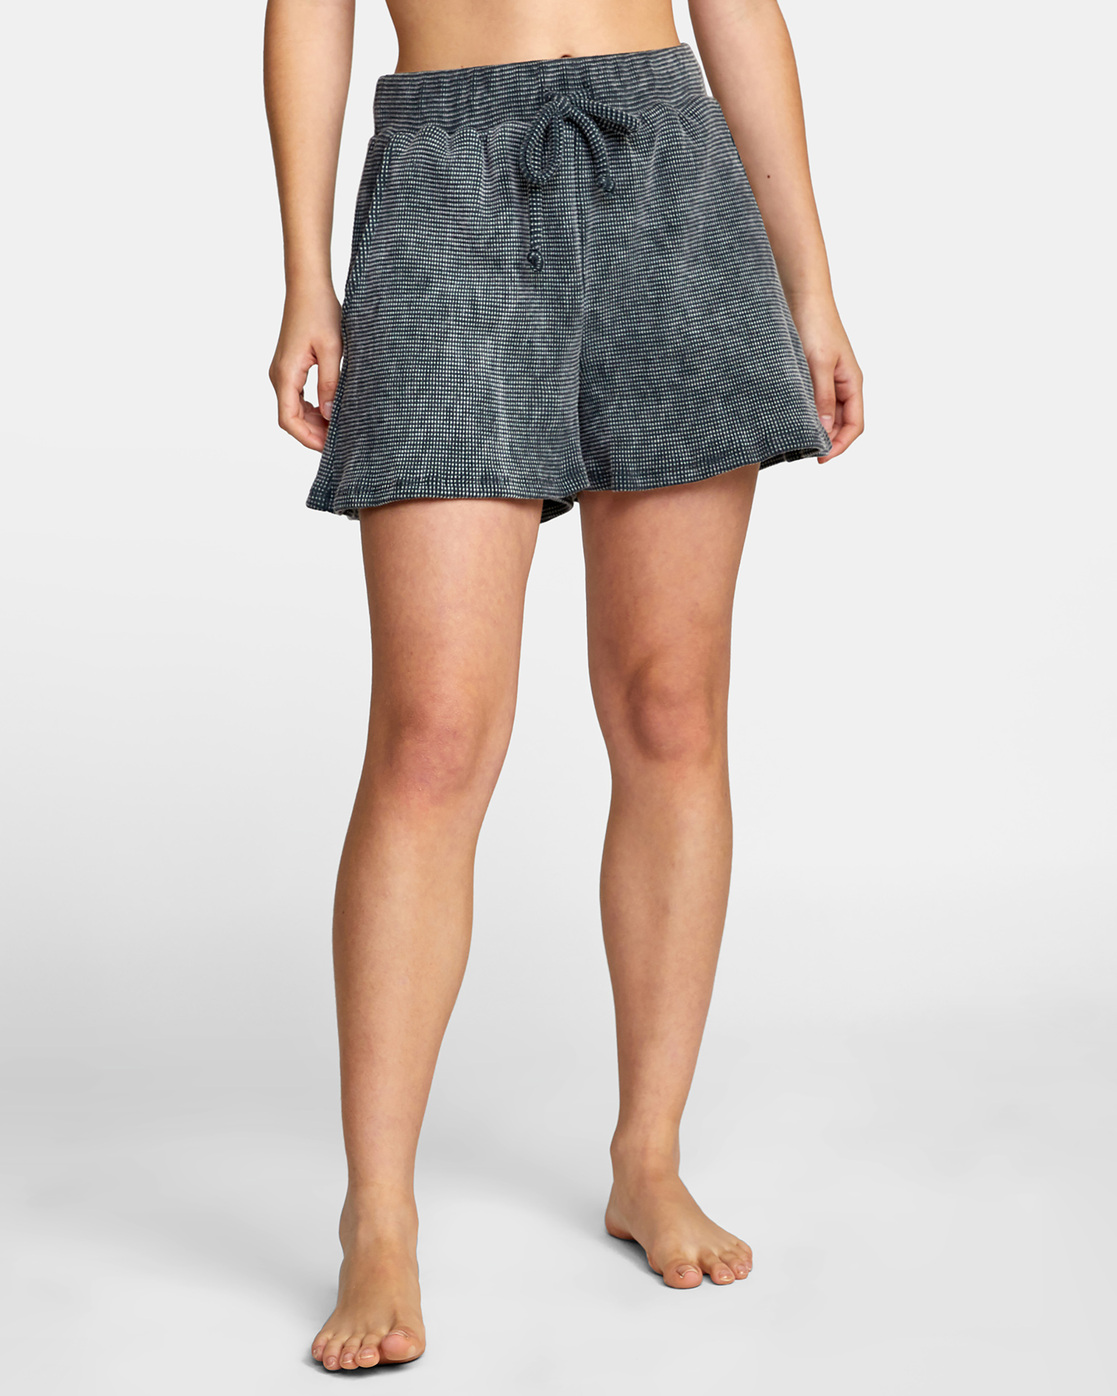 7 SWEET DREAMS SHORT Black AVJWH00101 RVCA